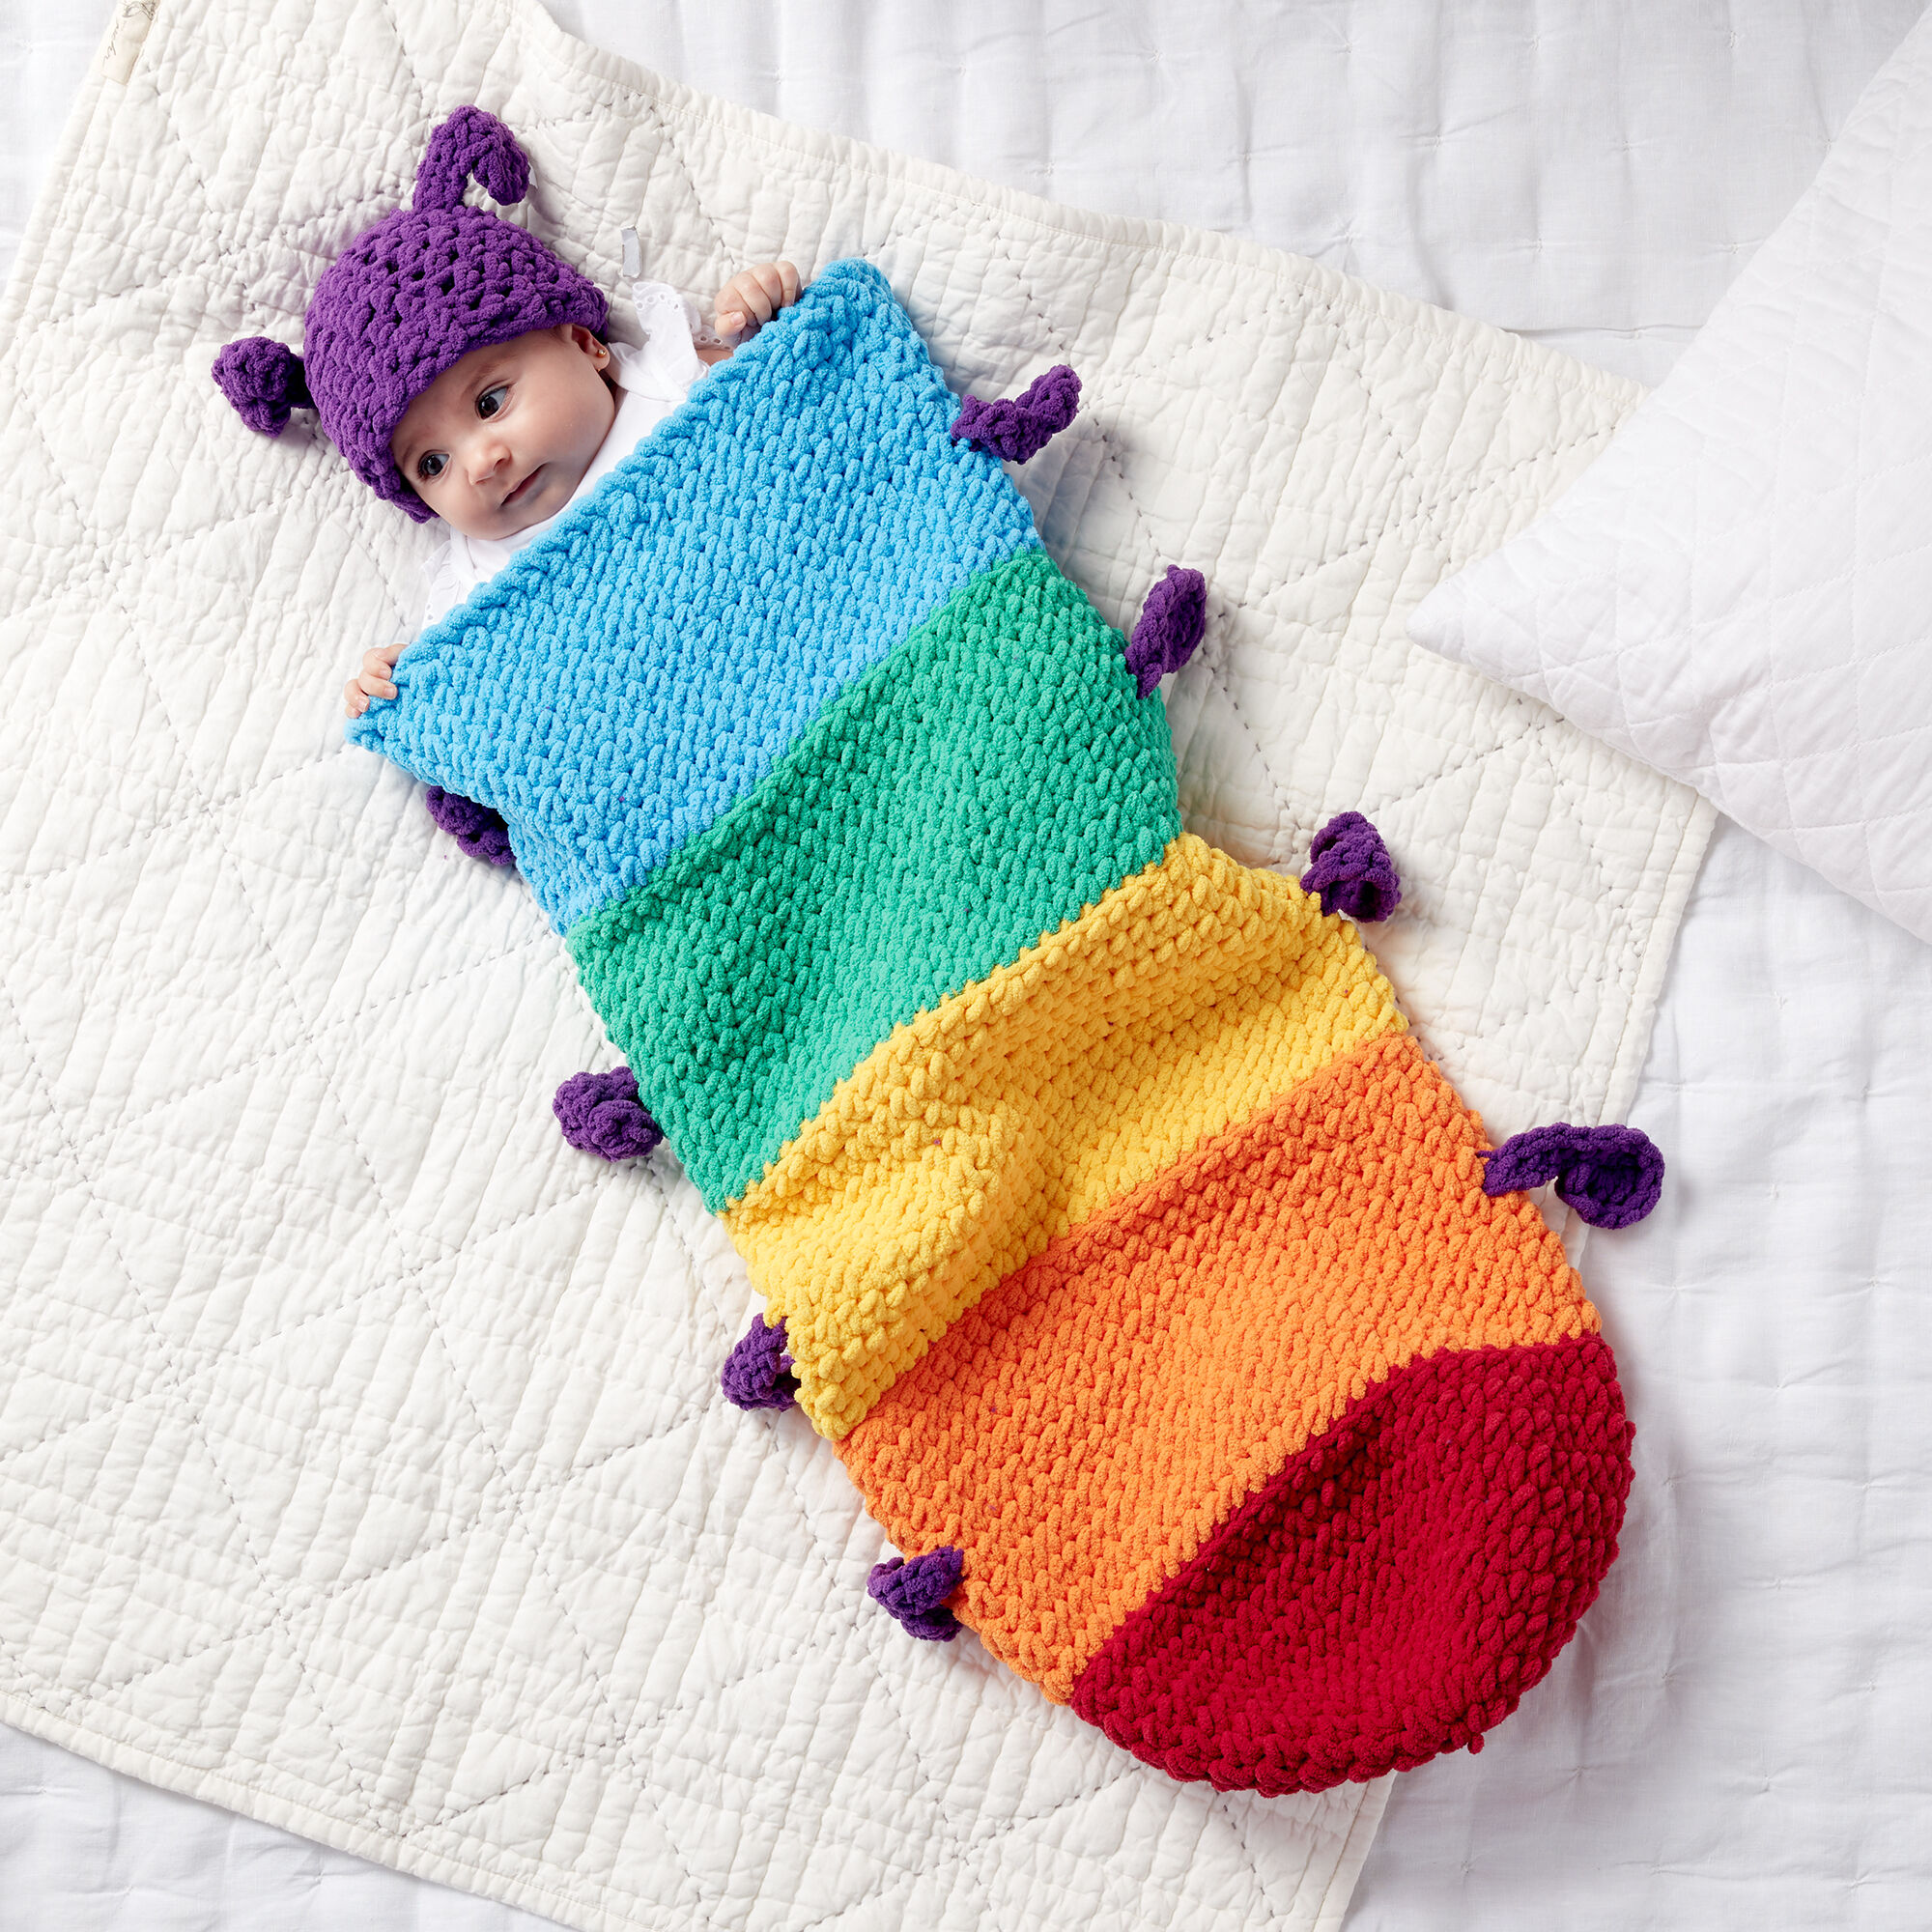 Easy Caterpillar Crochet Snuggle Sack